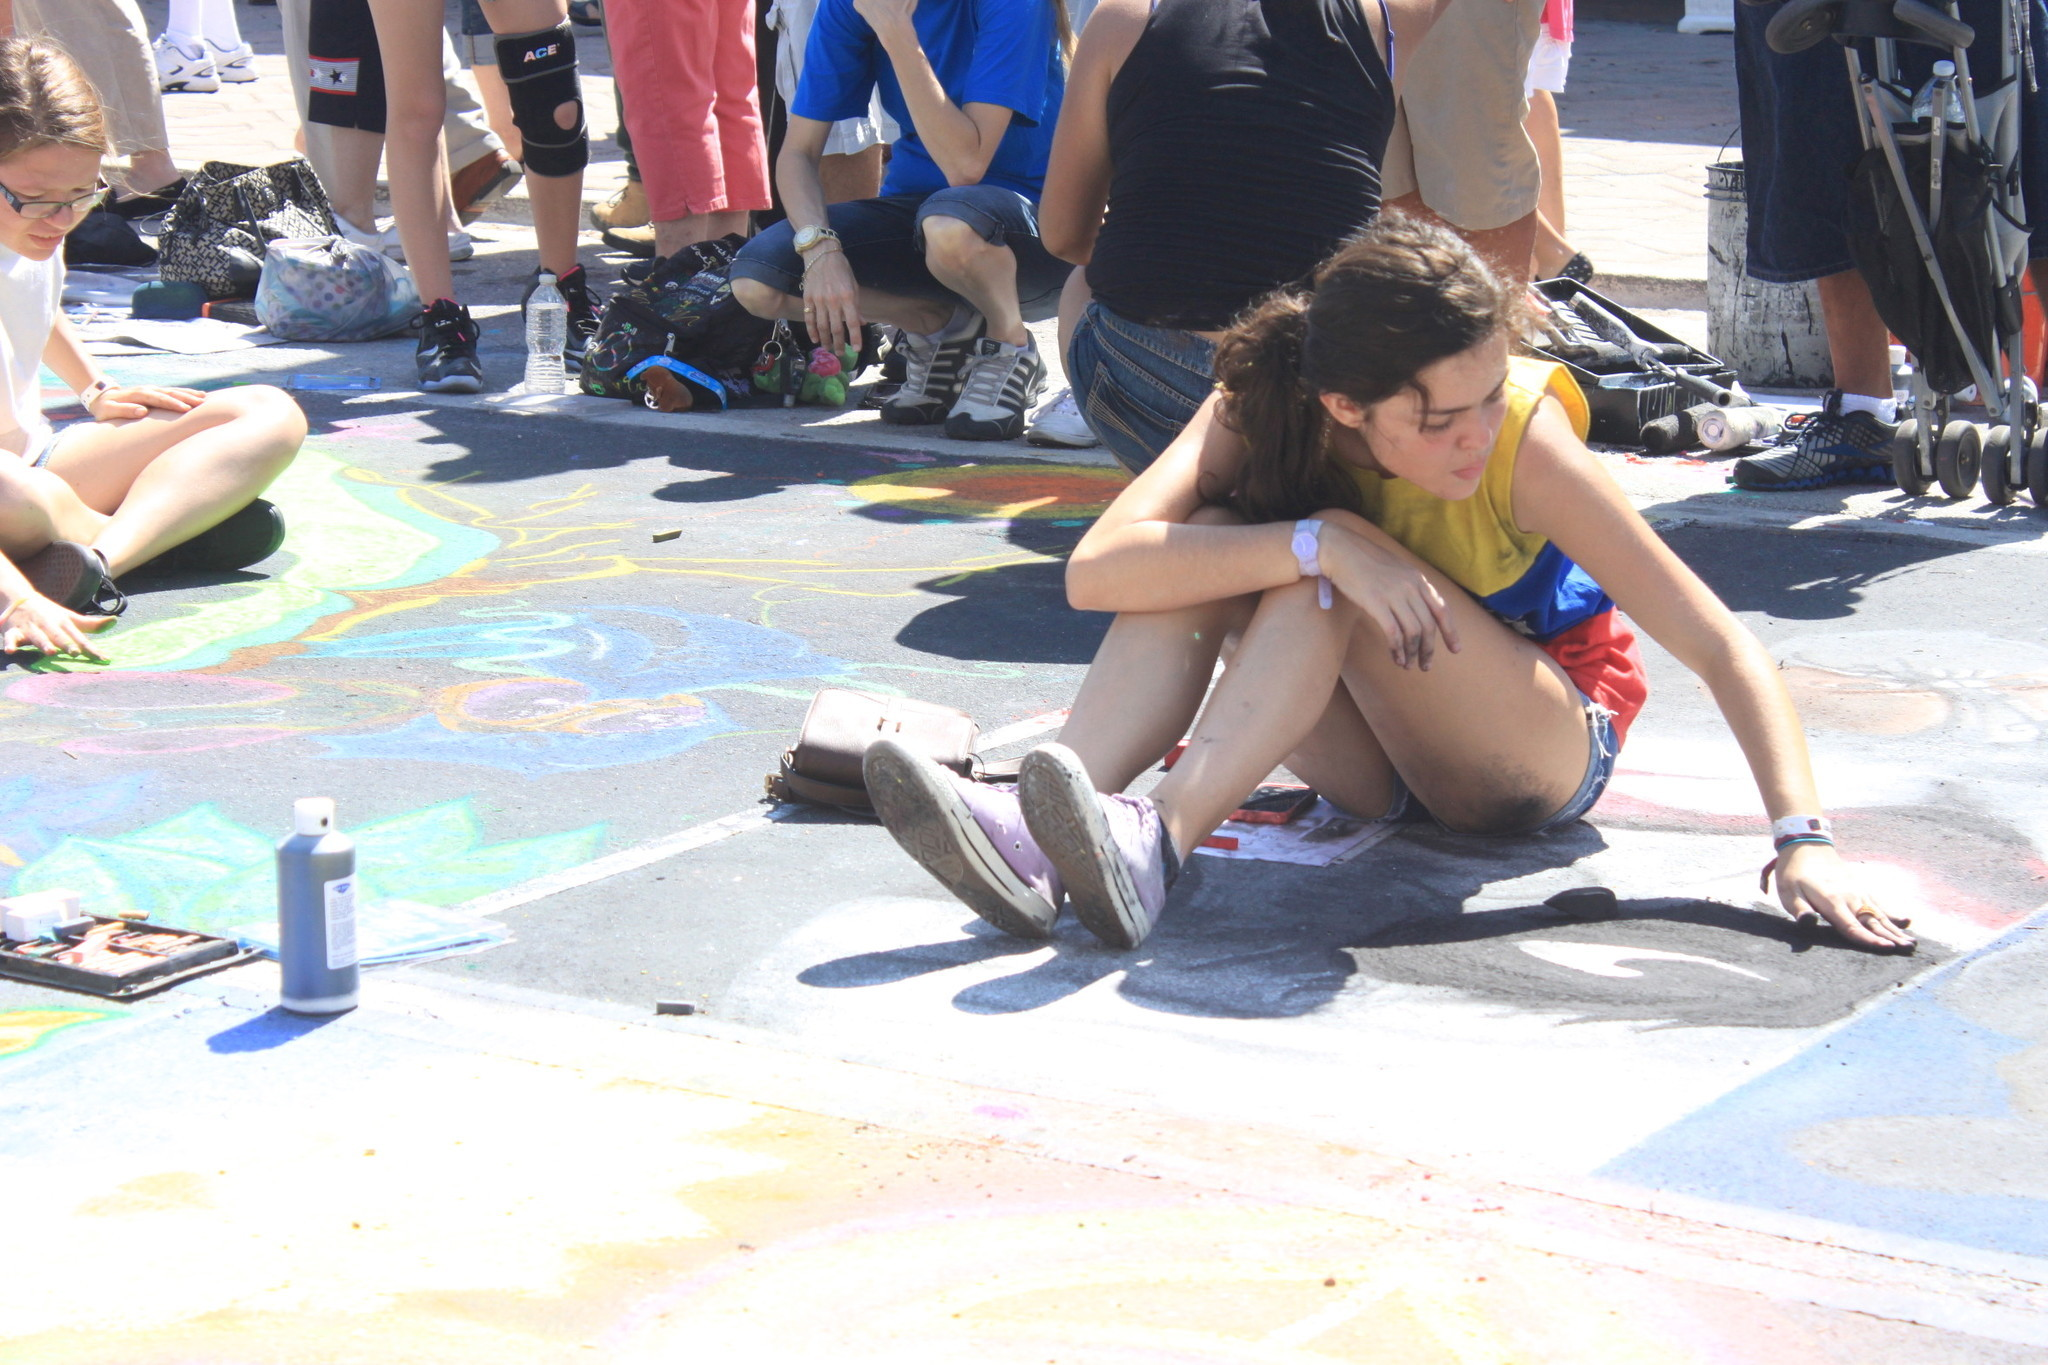 Lake Worth Street Painting Festival - Lake Worth Street Painting Festival Pictures